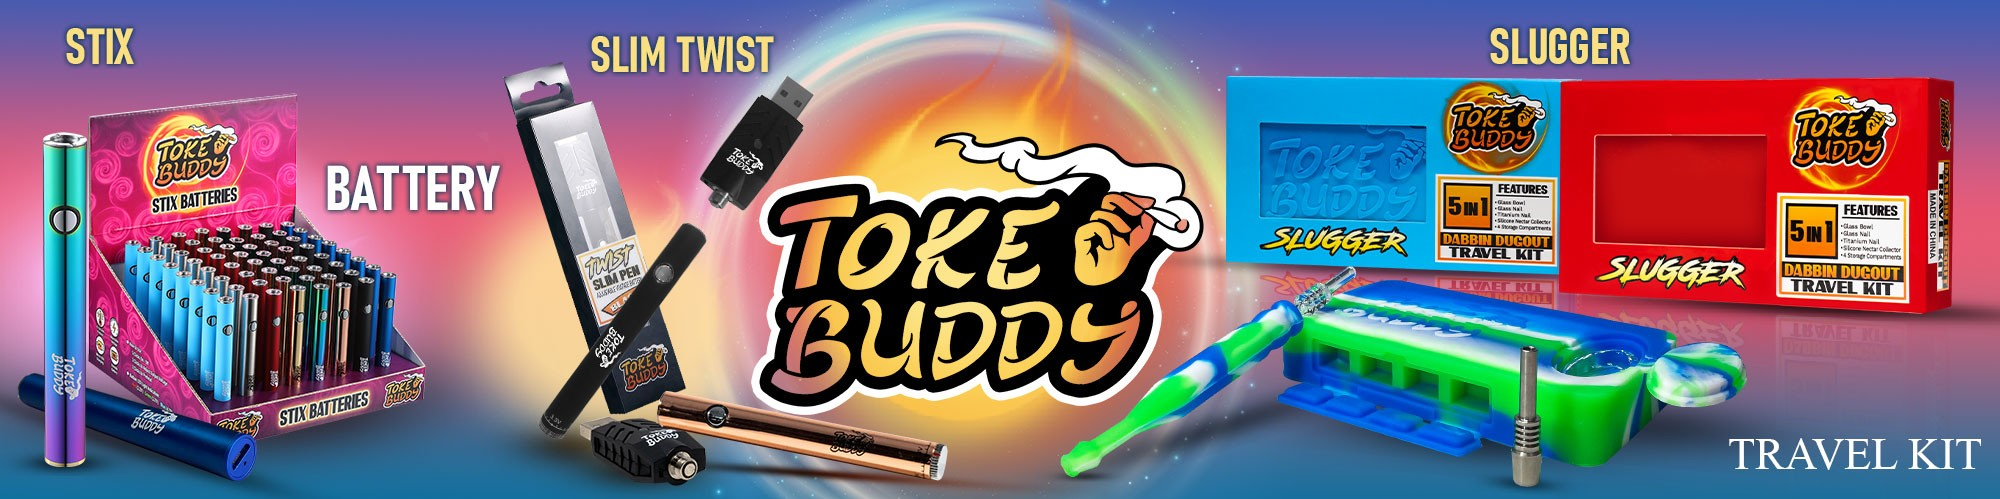 Toke Buddy Products, Stix BatterIes, Slim Twist Batteries, and Slugger Dabbin Dugout Kit